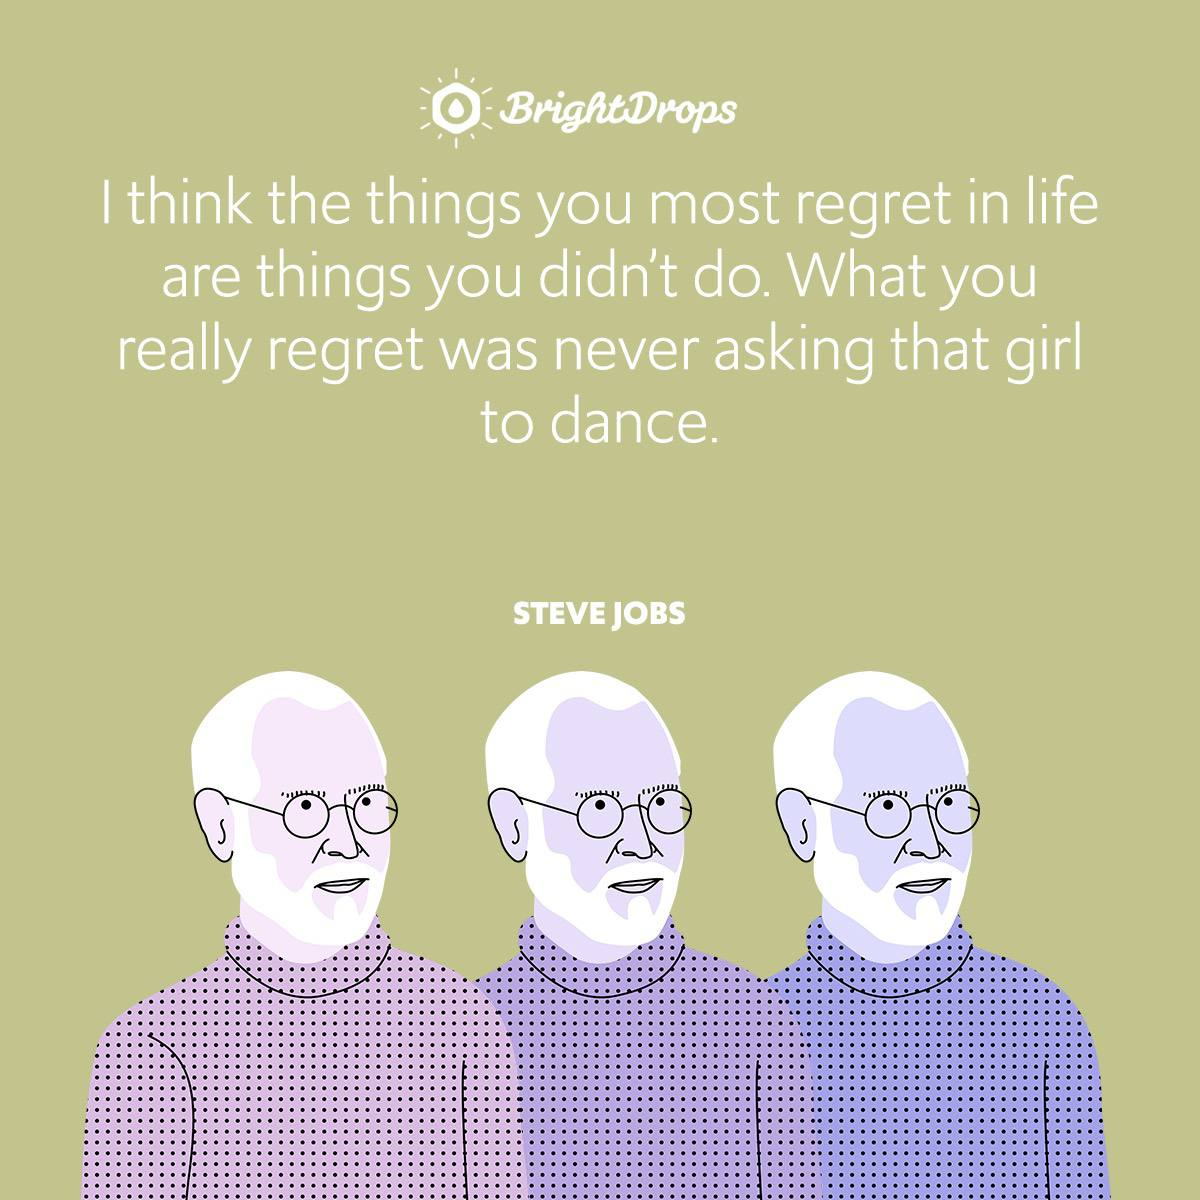 I think the things you most regret in life are things you didn't do. What you really regret was never asking that girl to dance.